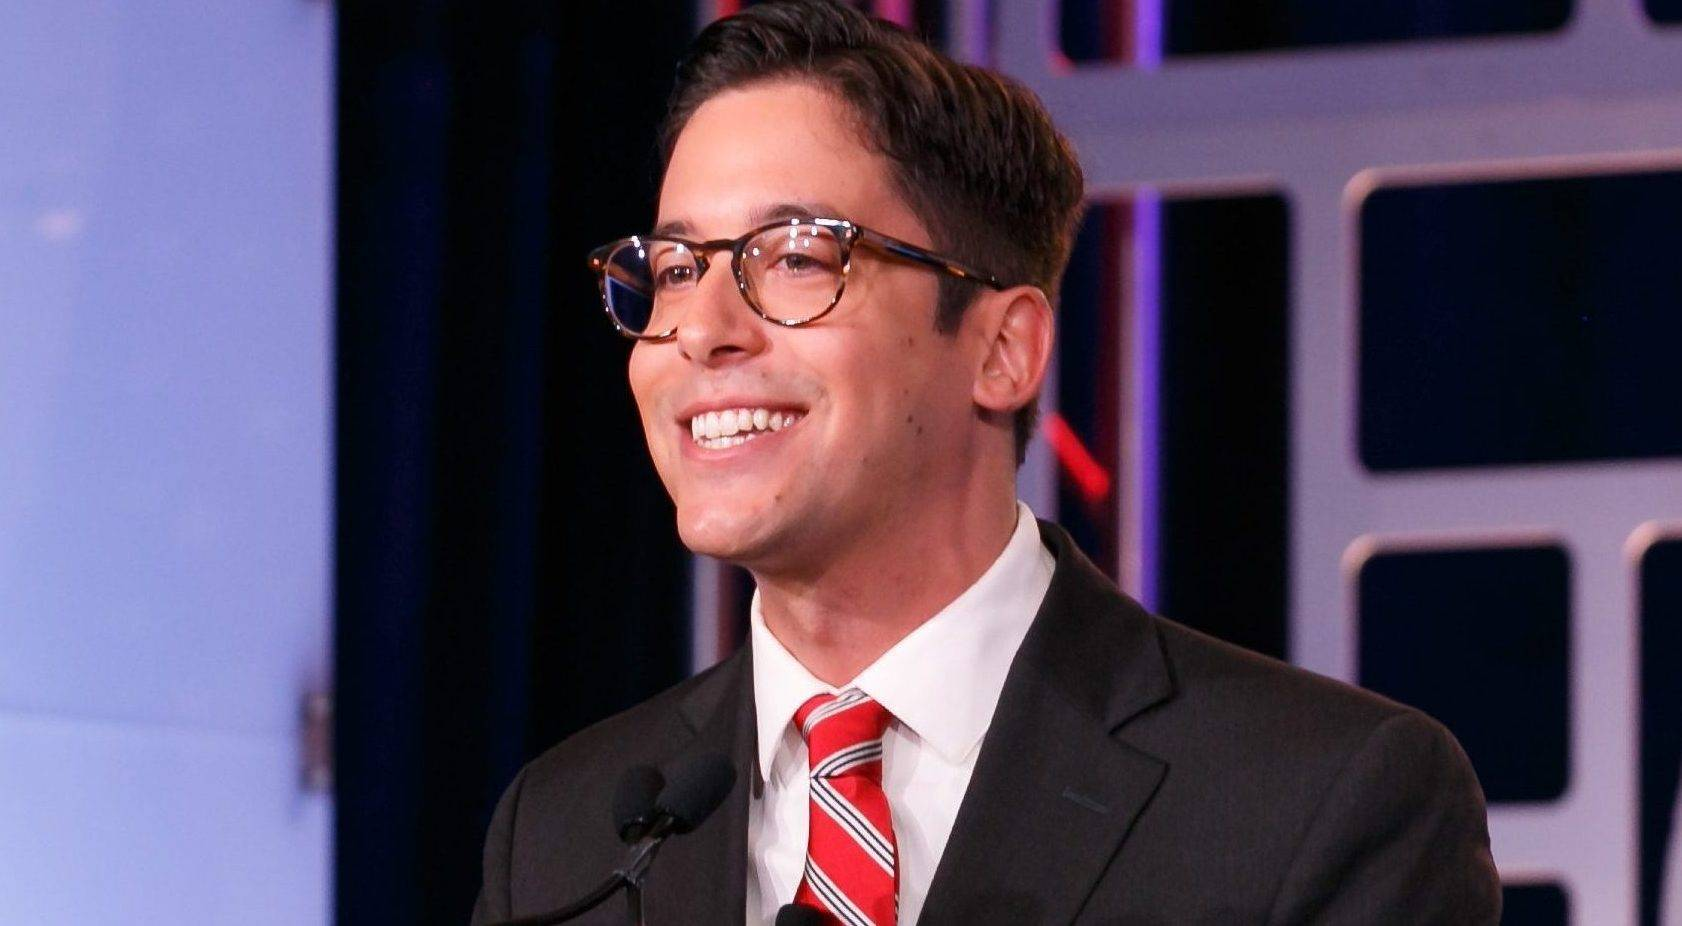 The net worth of Michael Knowles